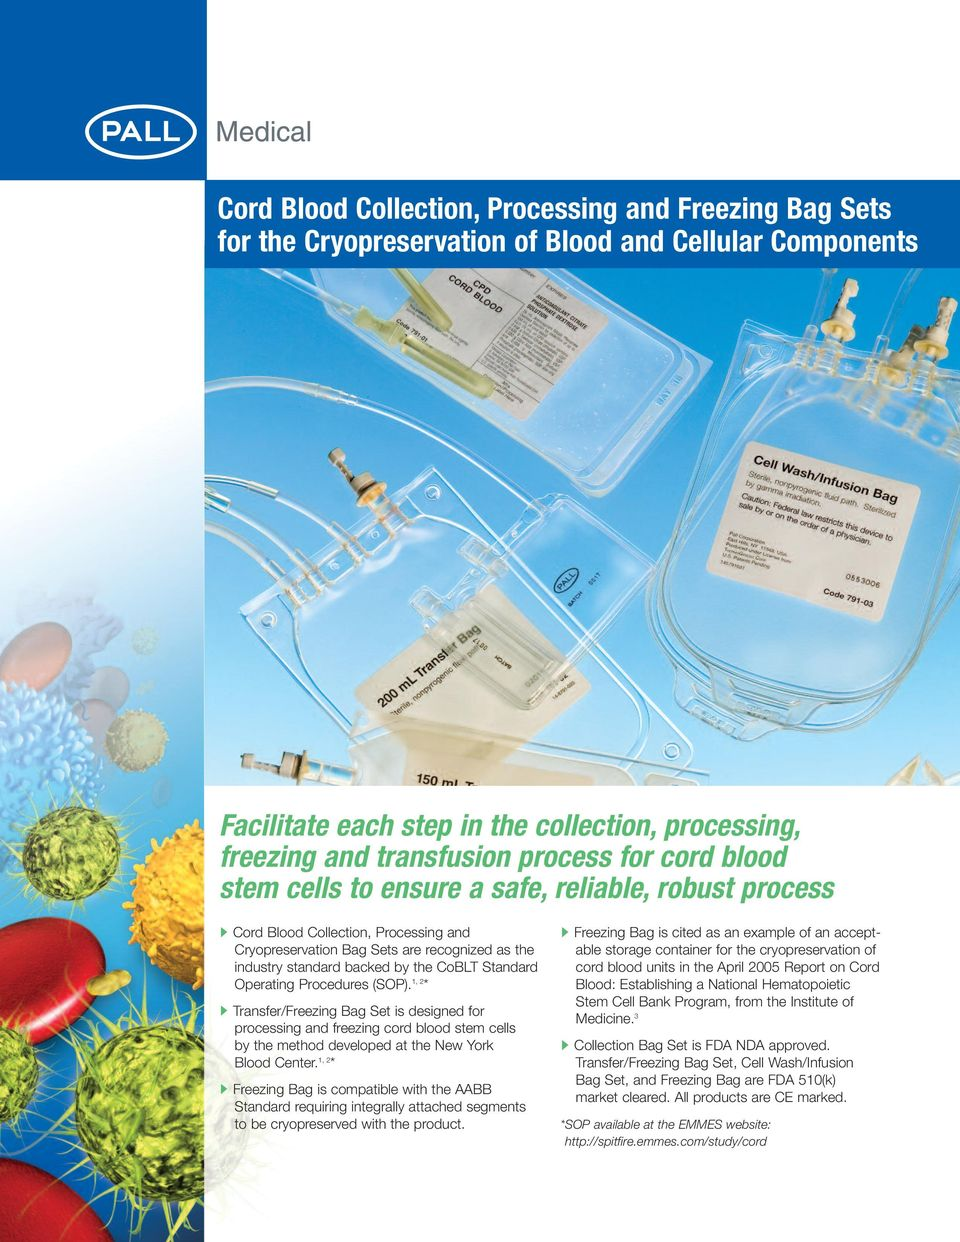 Standard Operating Procedures (SOP). 1, 2 * Transfer/Freezing Bag Set is designed for processing and freezing cord blood stem cells by the method developed at the New York Blood Center.